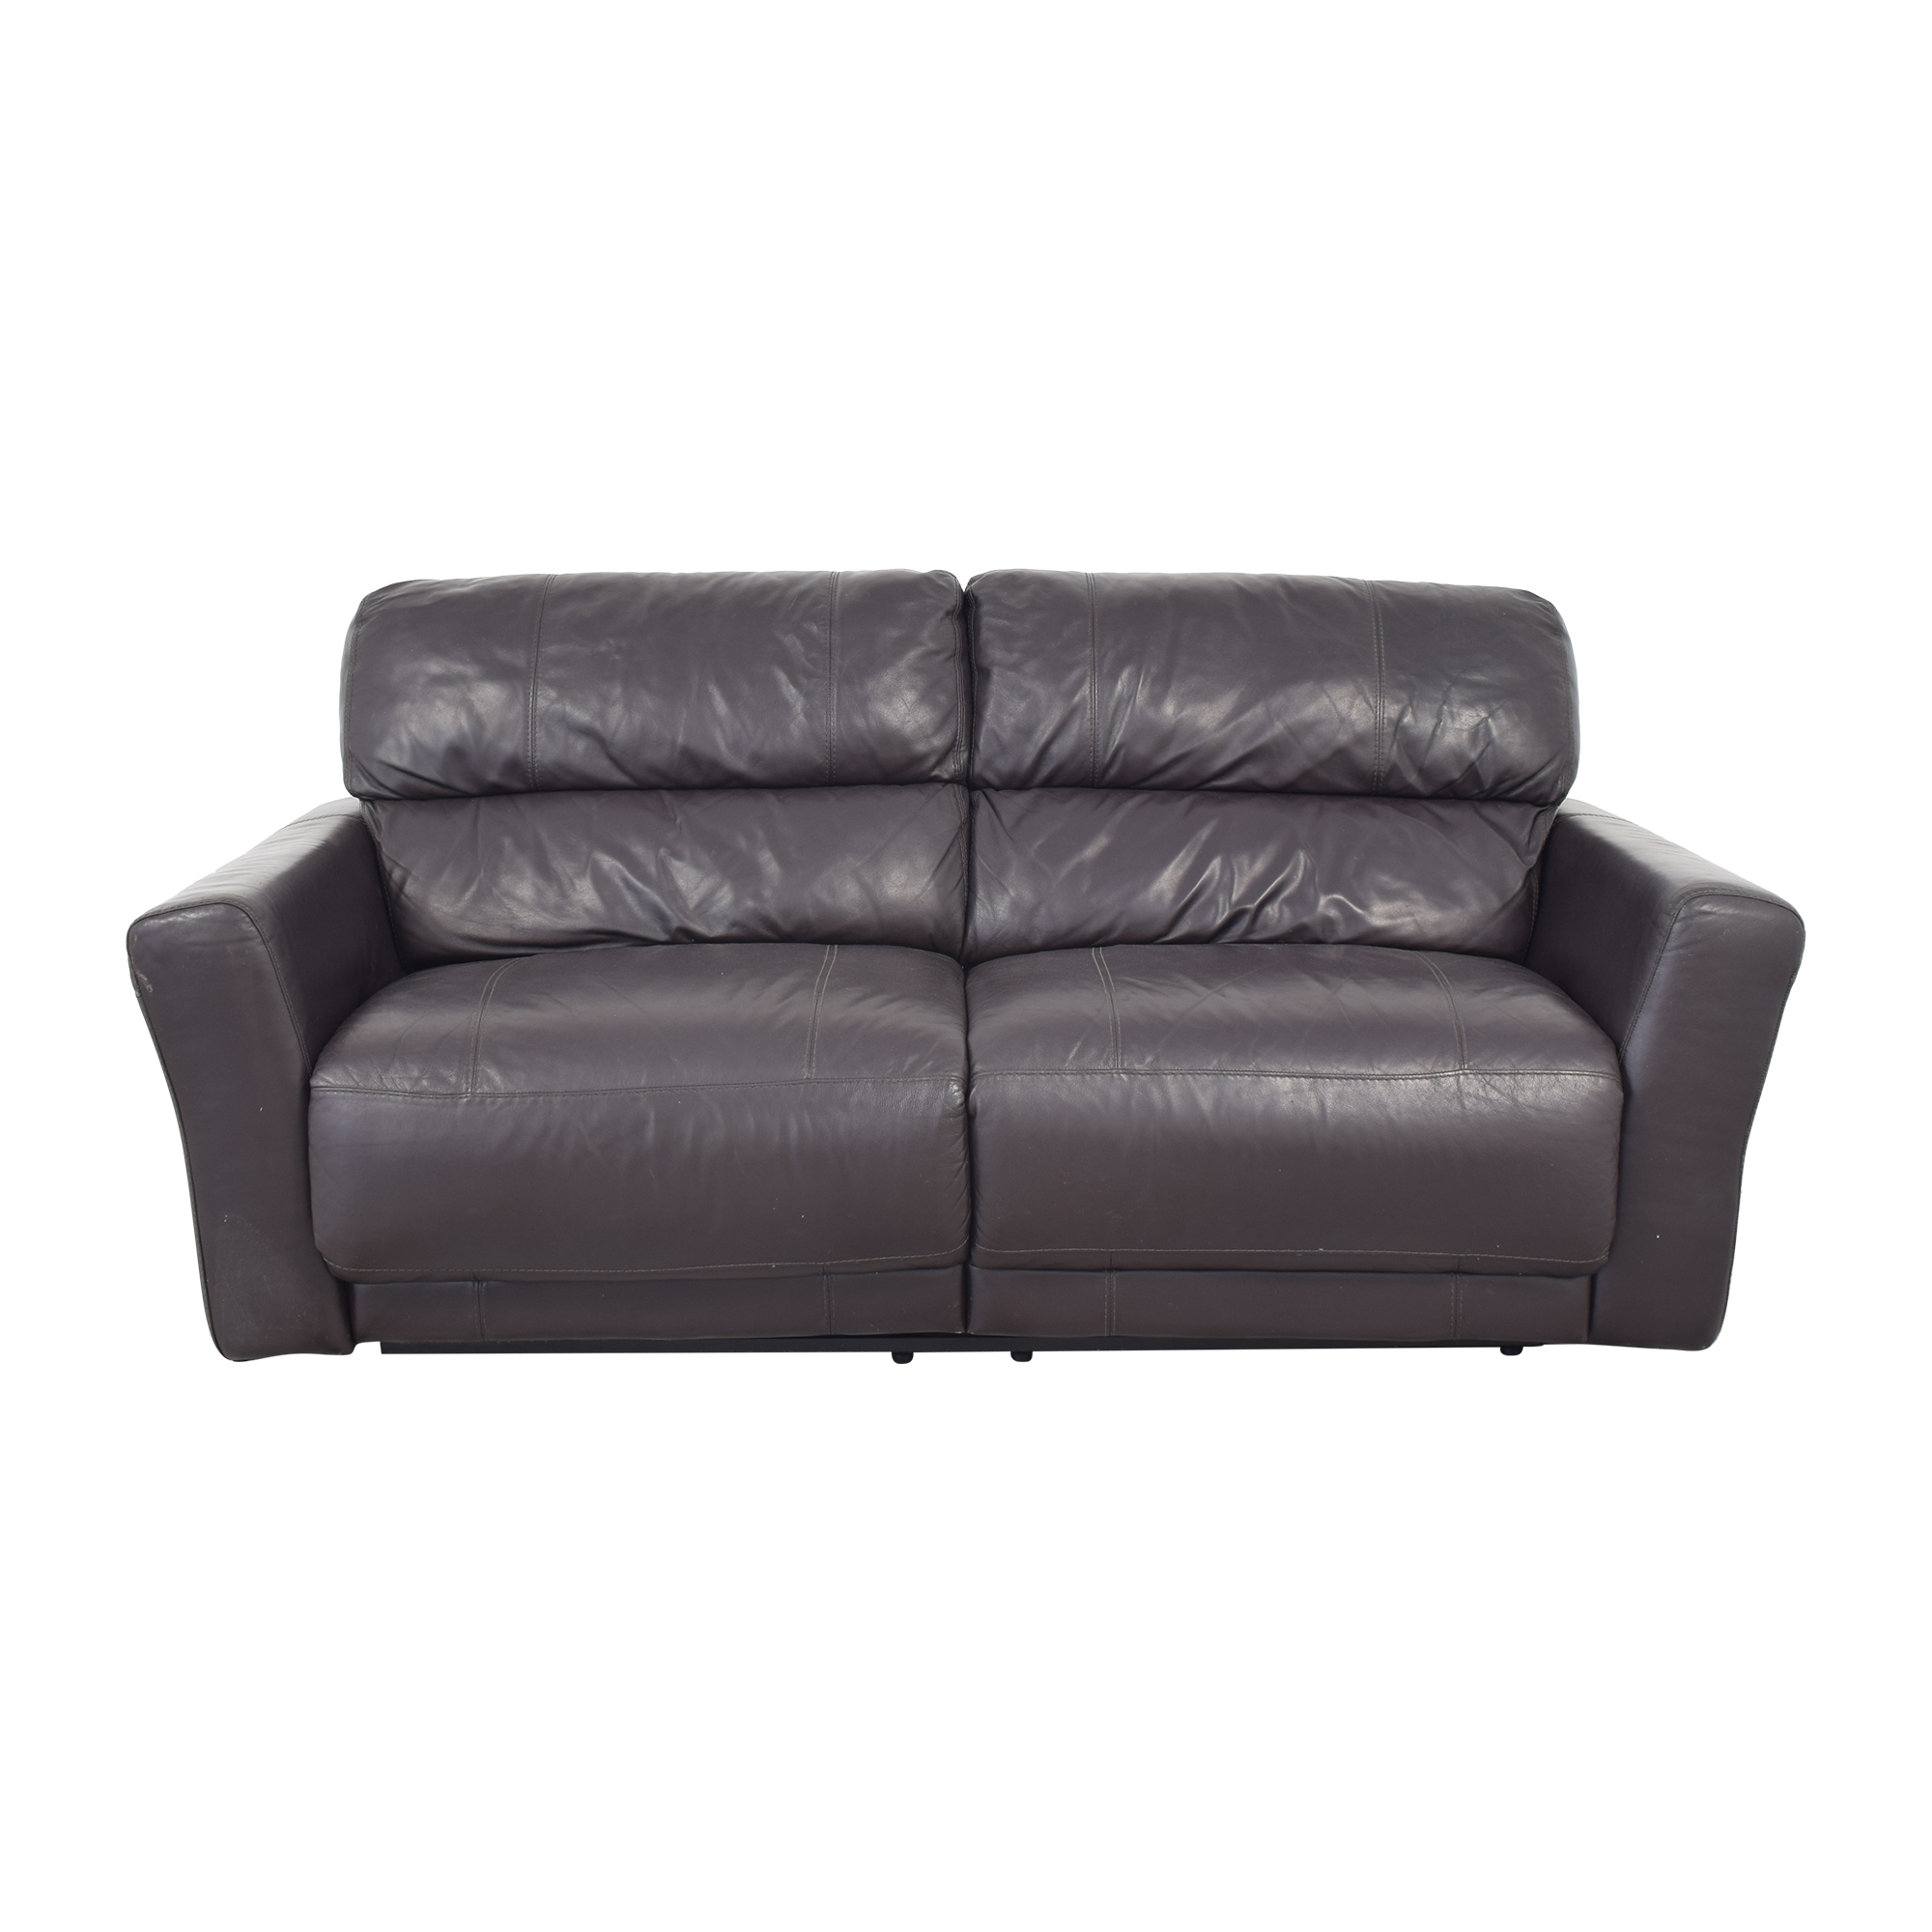 Chateau d'Ax Chateau d'Ax Reclining Loveseat coupon